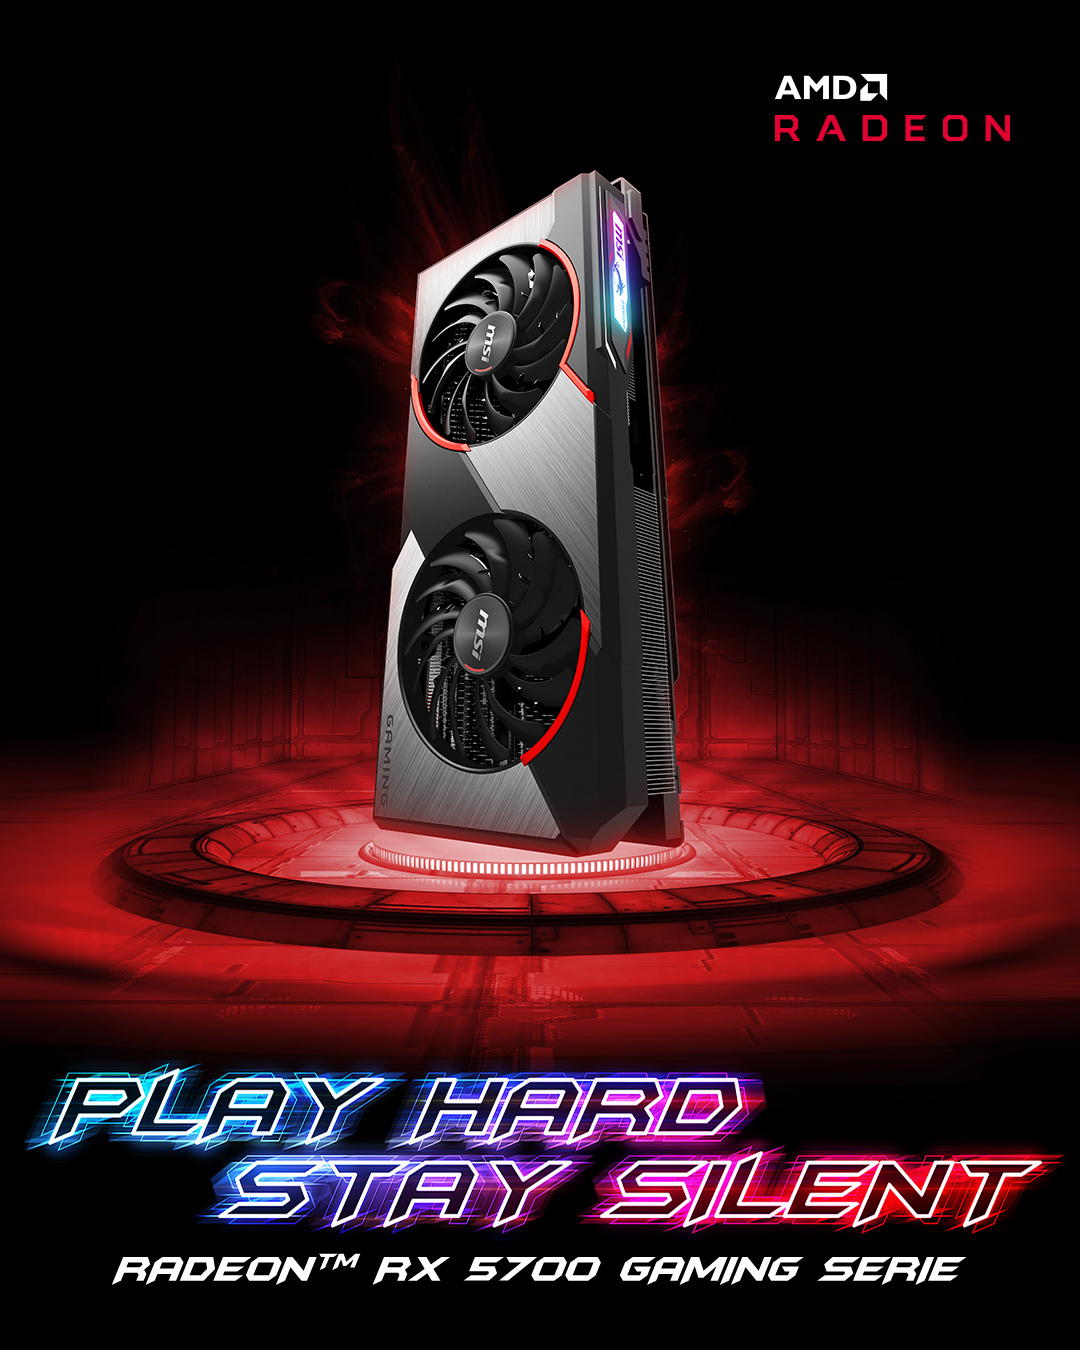 AMD RX5700 Gaming Serie